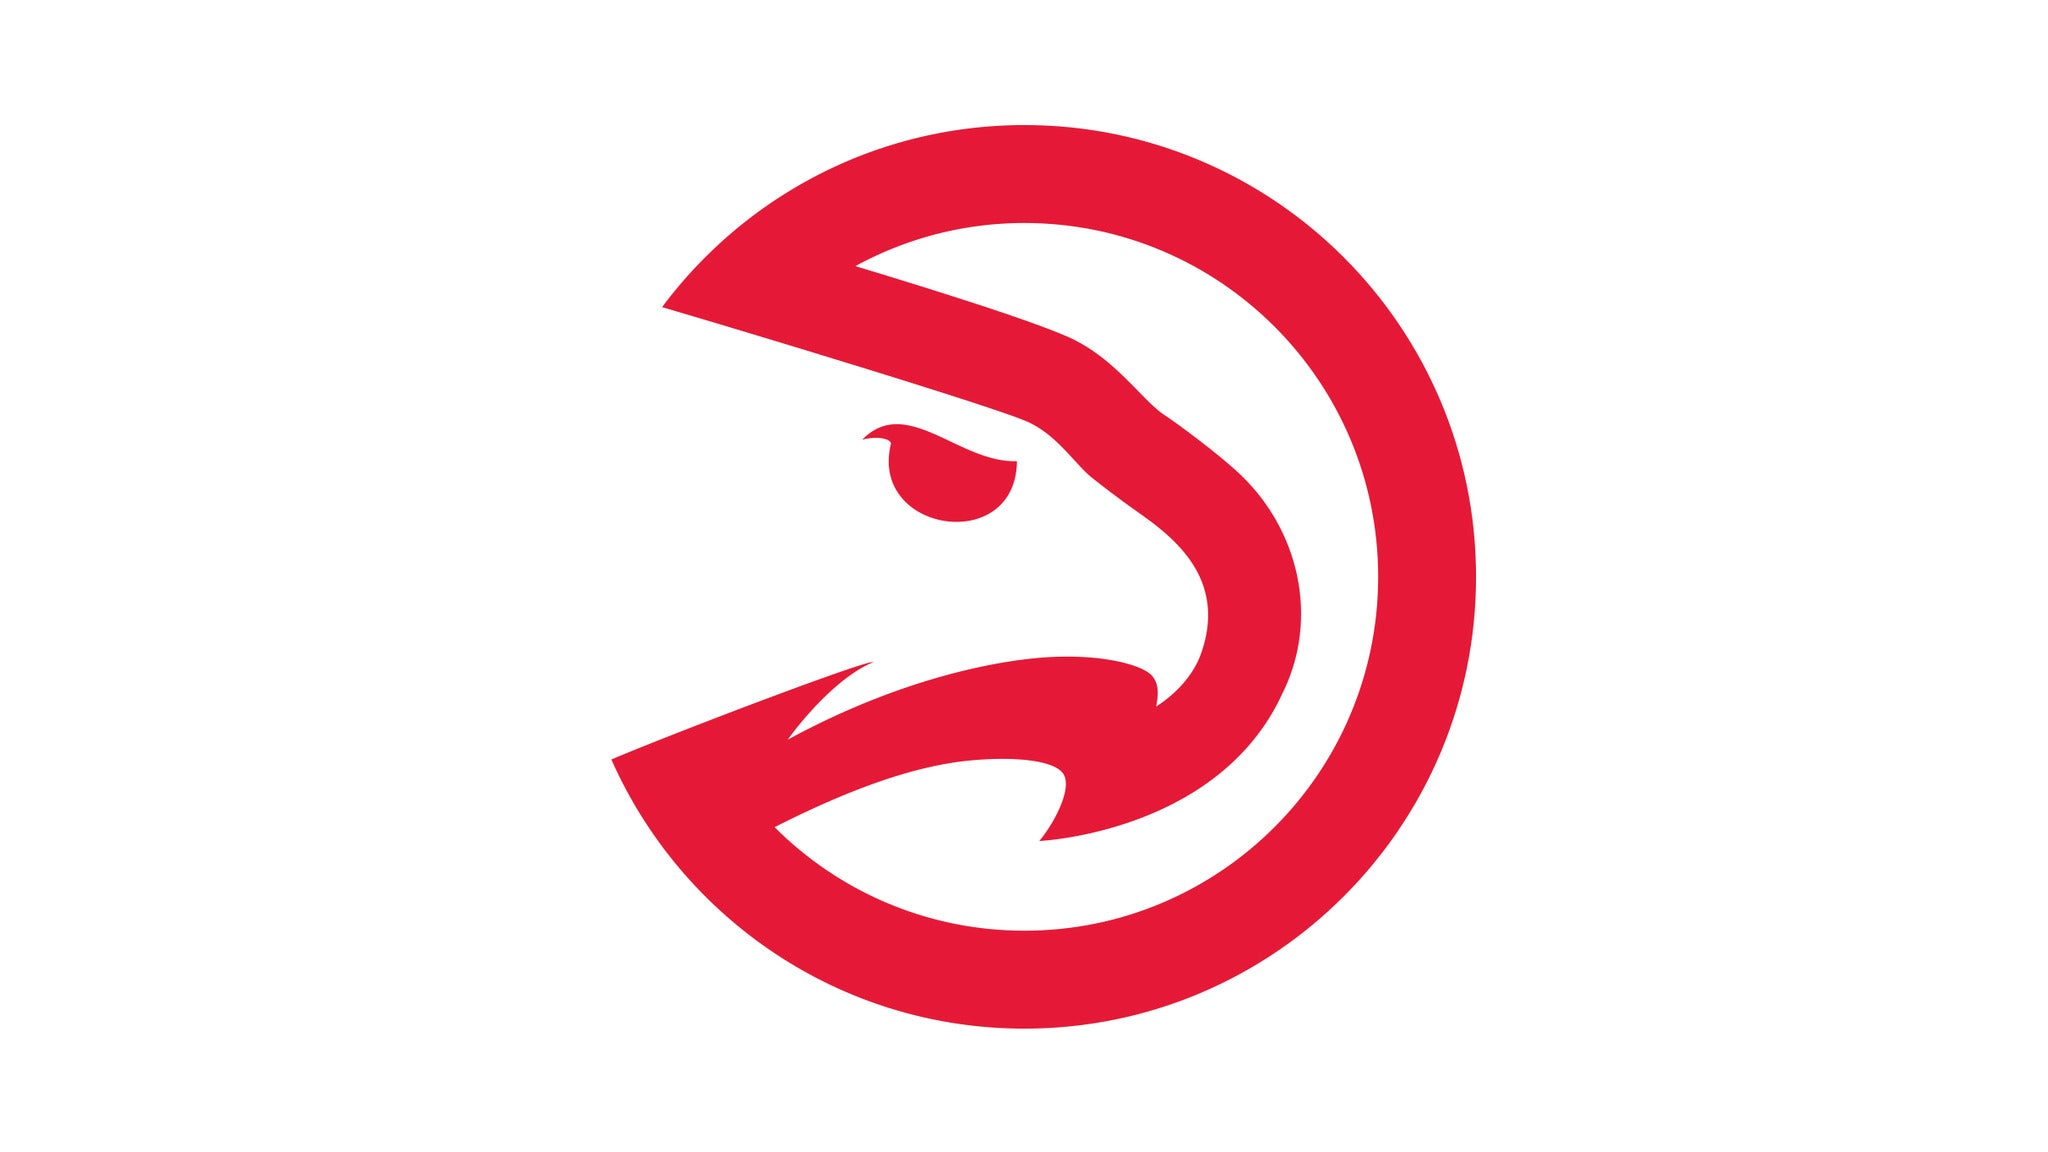 Atlanta Hawks vs. New York Knicks at State Farm Arena